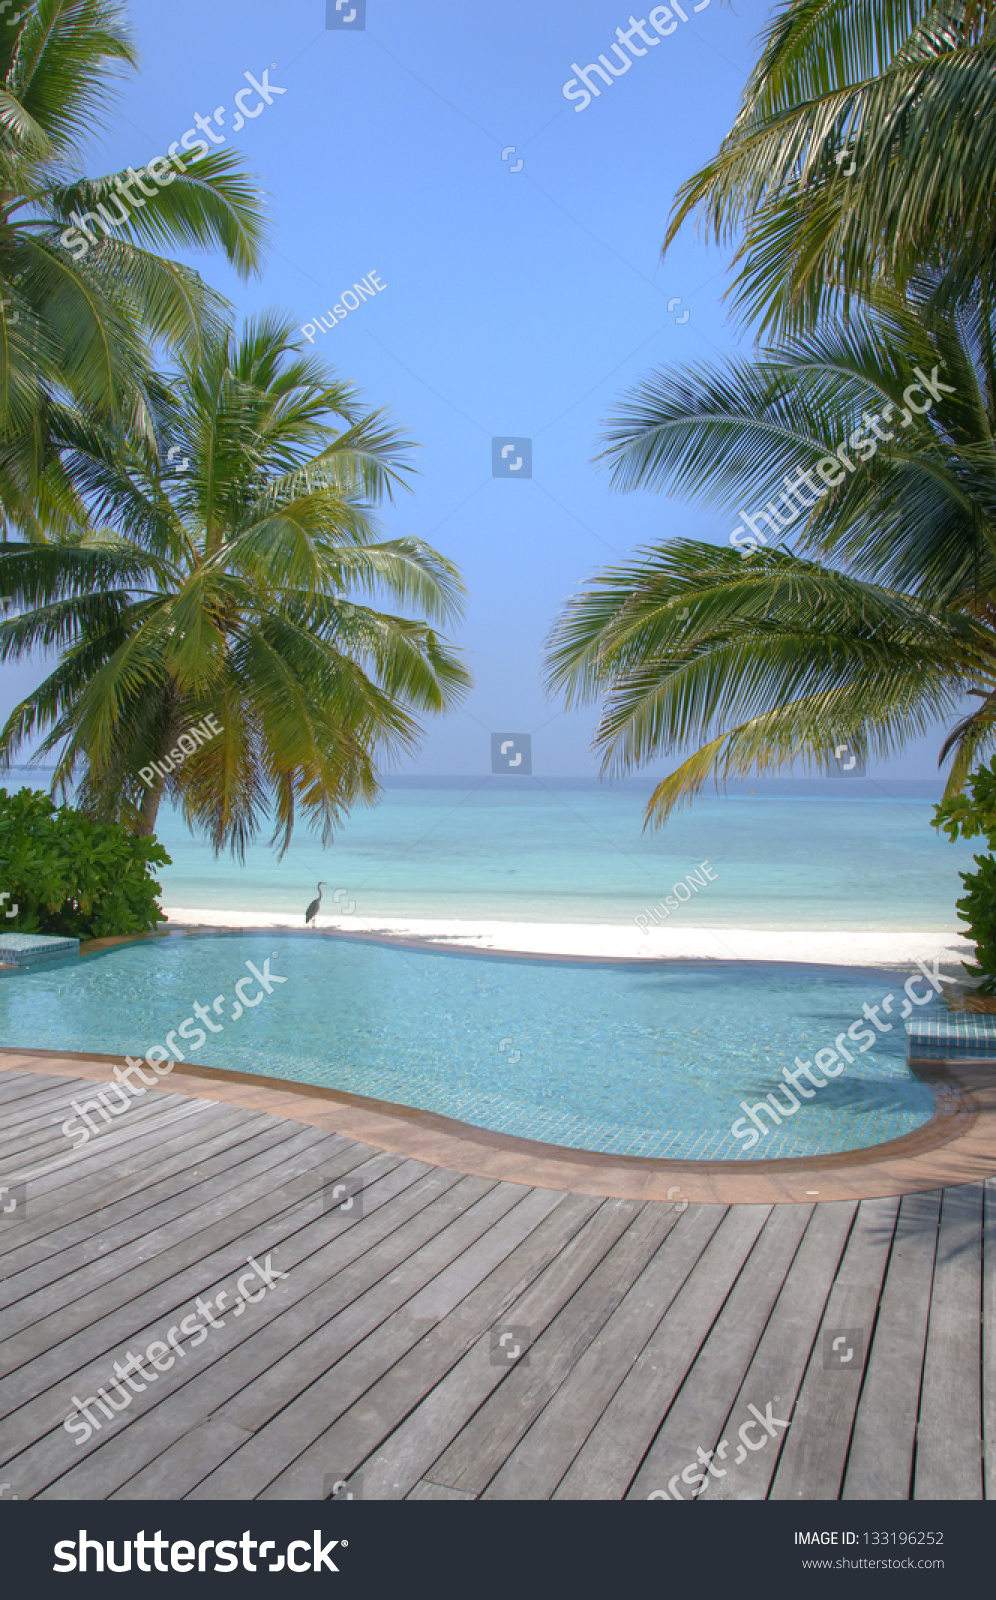 Idyllic beach pool palm trees on stock photo 133196252 - Palm beach pool ...